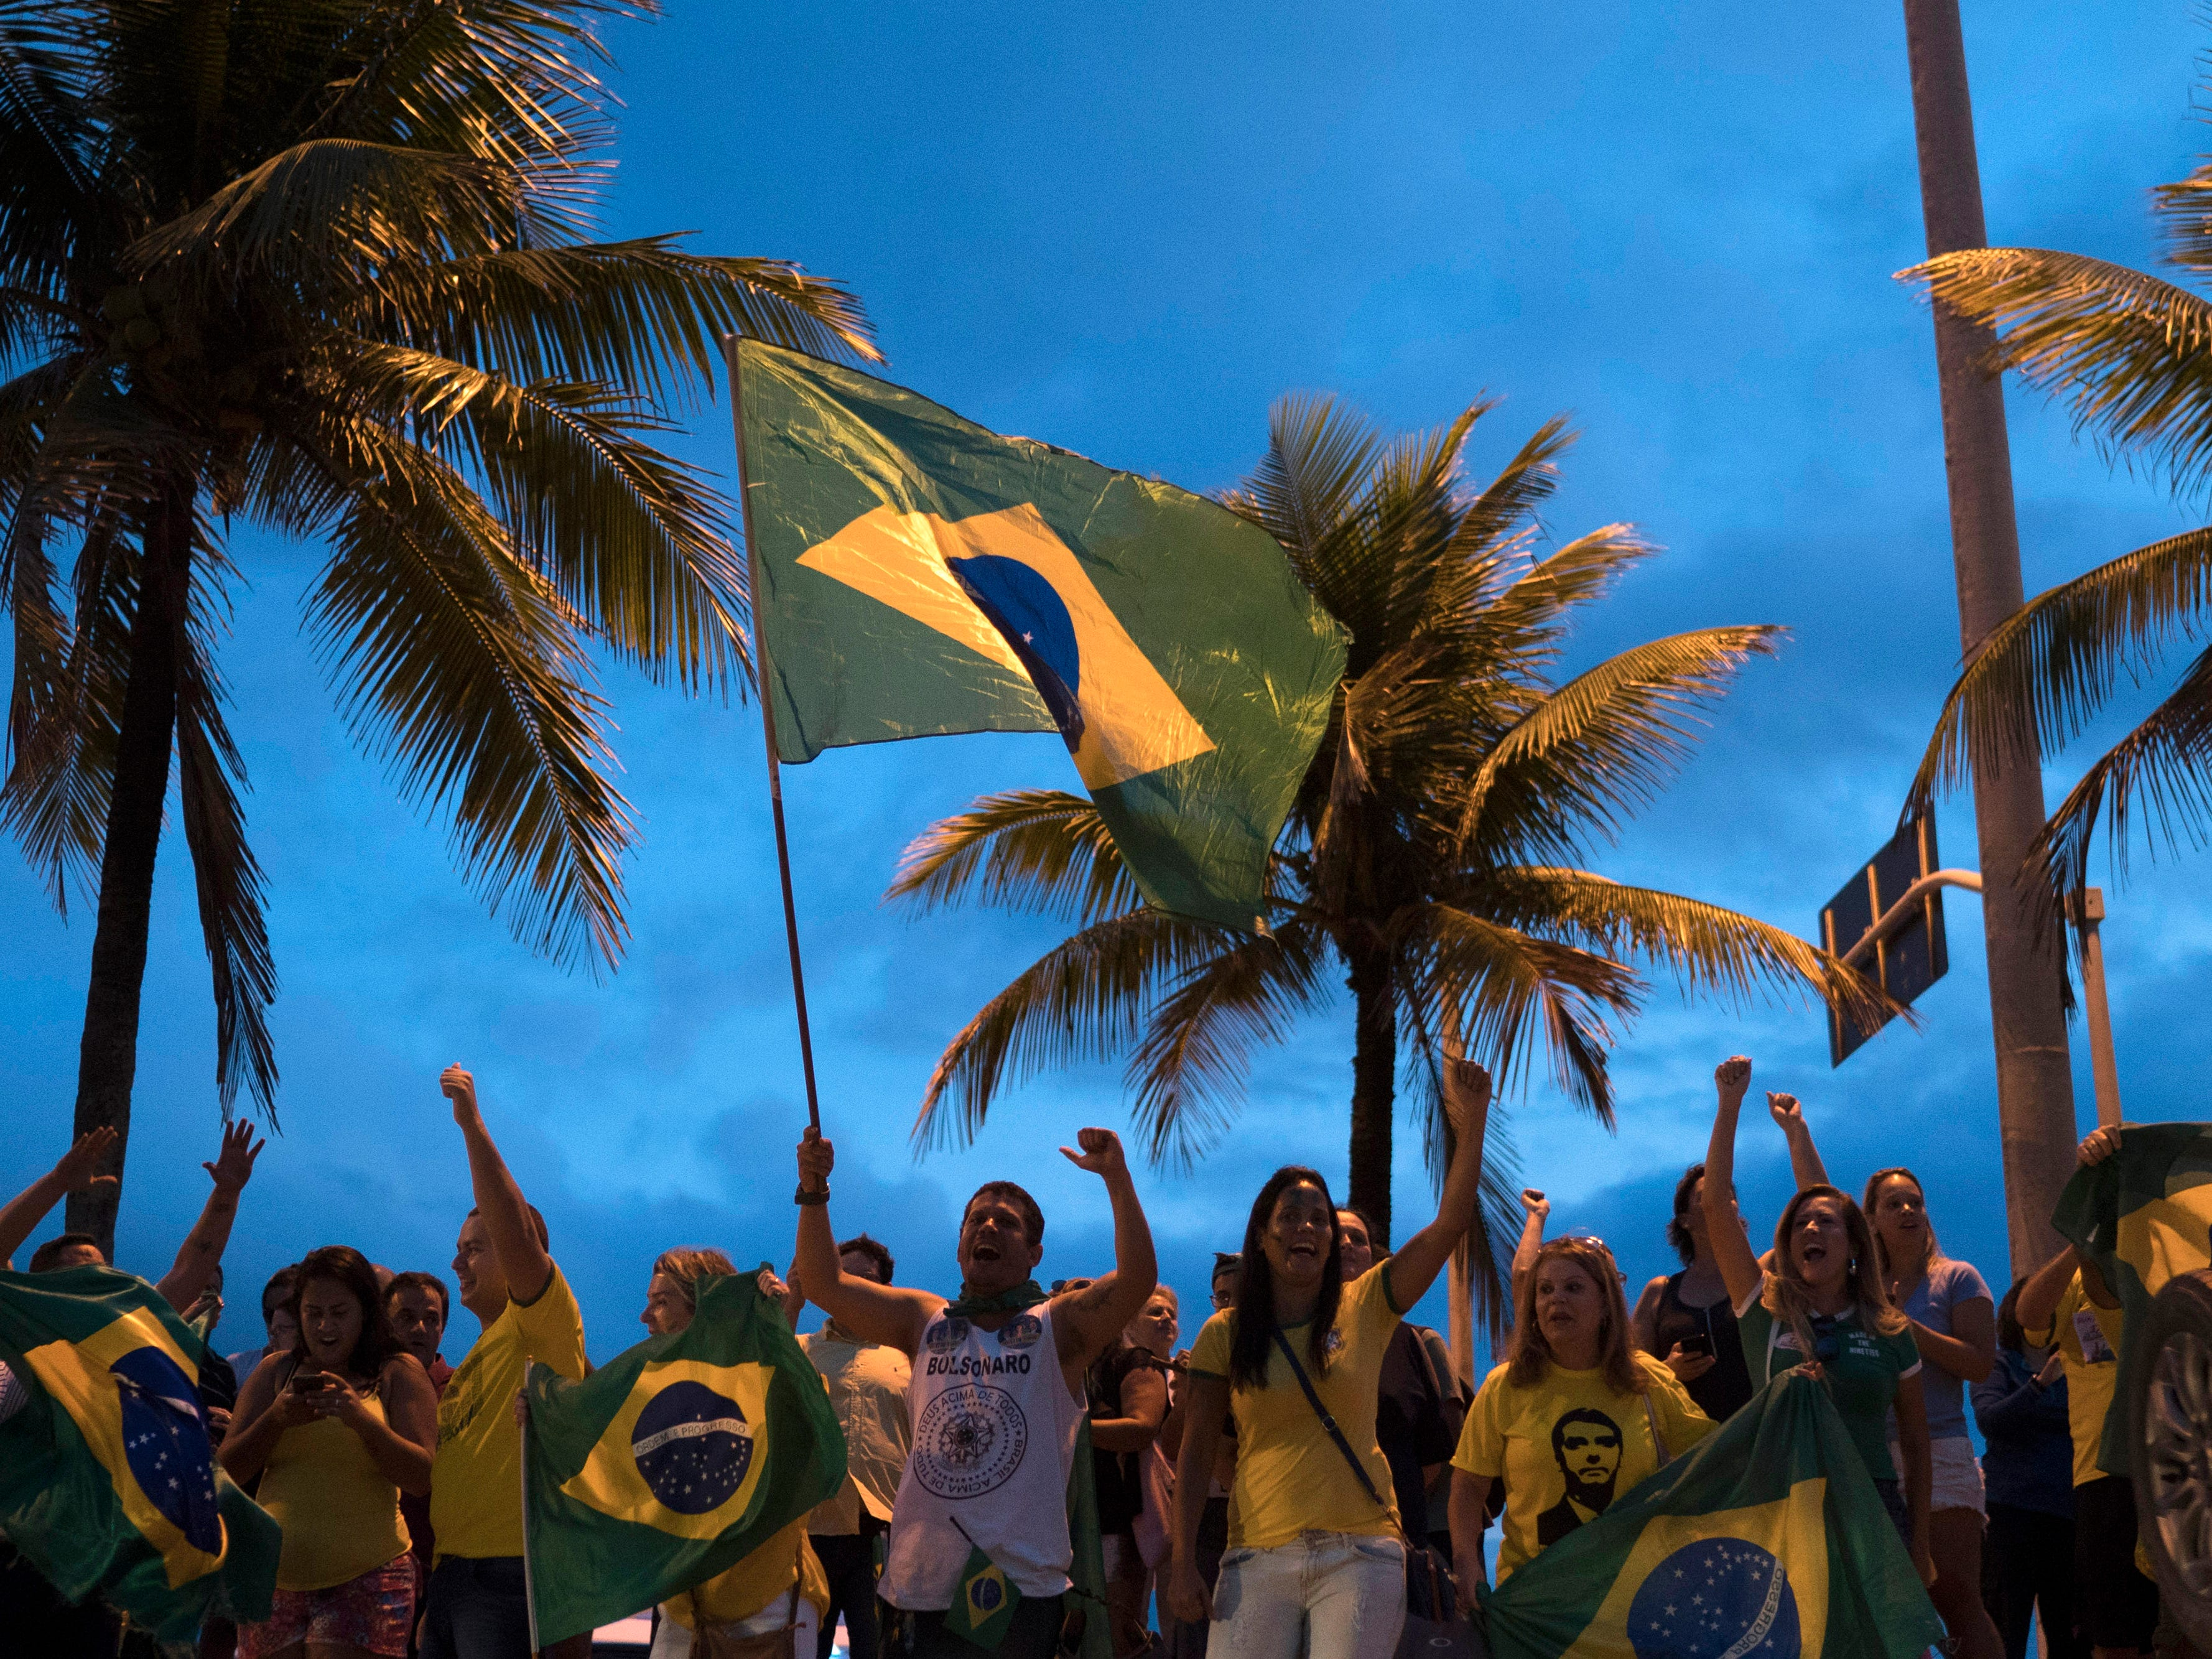 People gather in front of the condominium where leading presidential candidate Jair Bolsonaro resides to show their support, in Rio de Janeiro, Brazil, Saturday, Sept. 29, 2018. Bolsonaro, who suffered intestinal damage and severe internal bleeding after the Sept. 6 attack at a campaign event and has undergone multiple surgeries, was discharged Saturday from a Sao Paulo hospital where he was being treated.